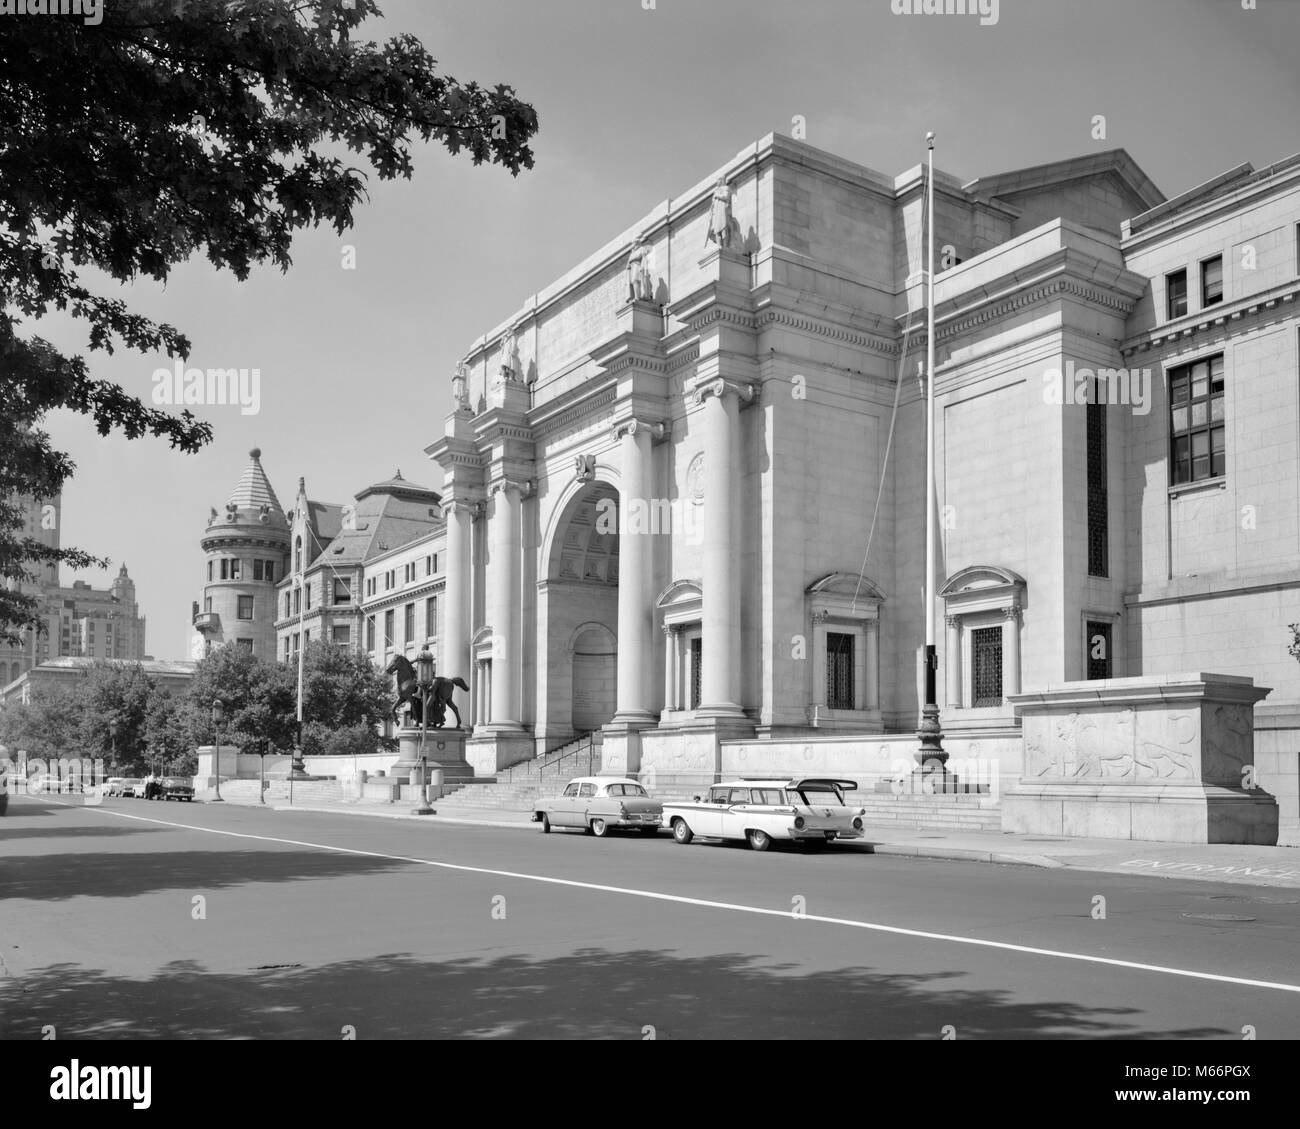 1950s 1960s AMERICAN MUSEUM OF NATURAL HISTORY CENTRAL PARK WEST MANHATTAN NEW YORK CITY USA - r5719 KRU001 HARS - Stock Image